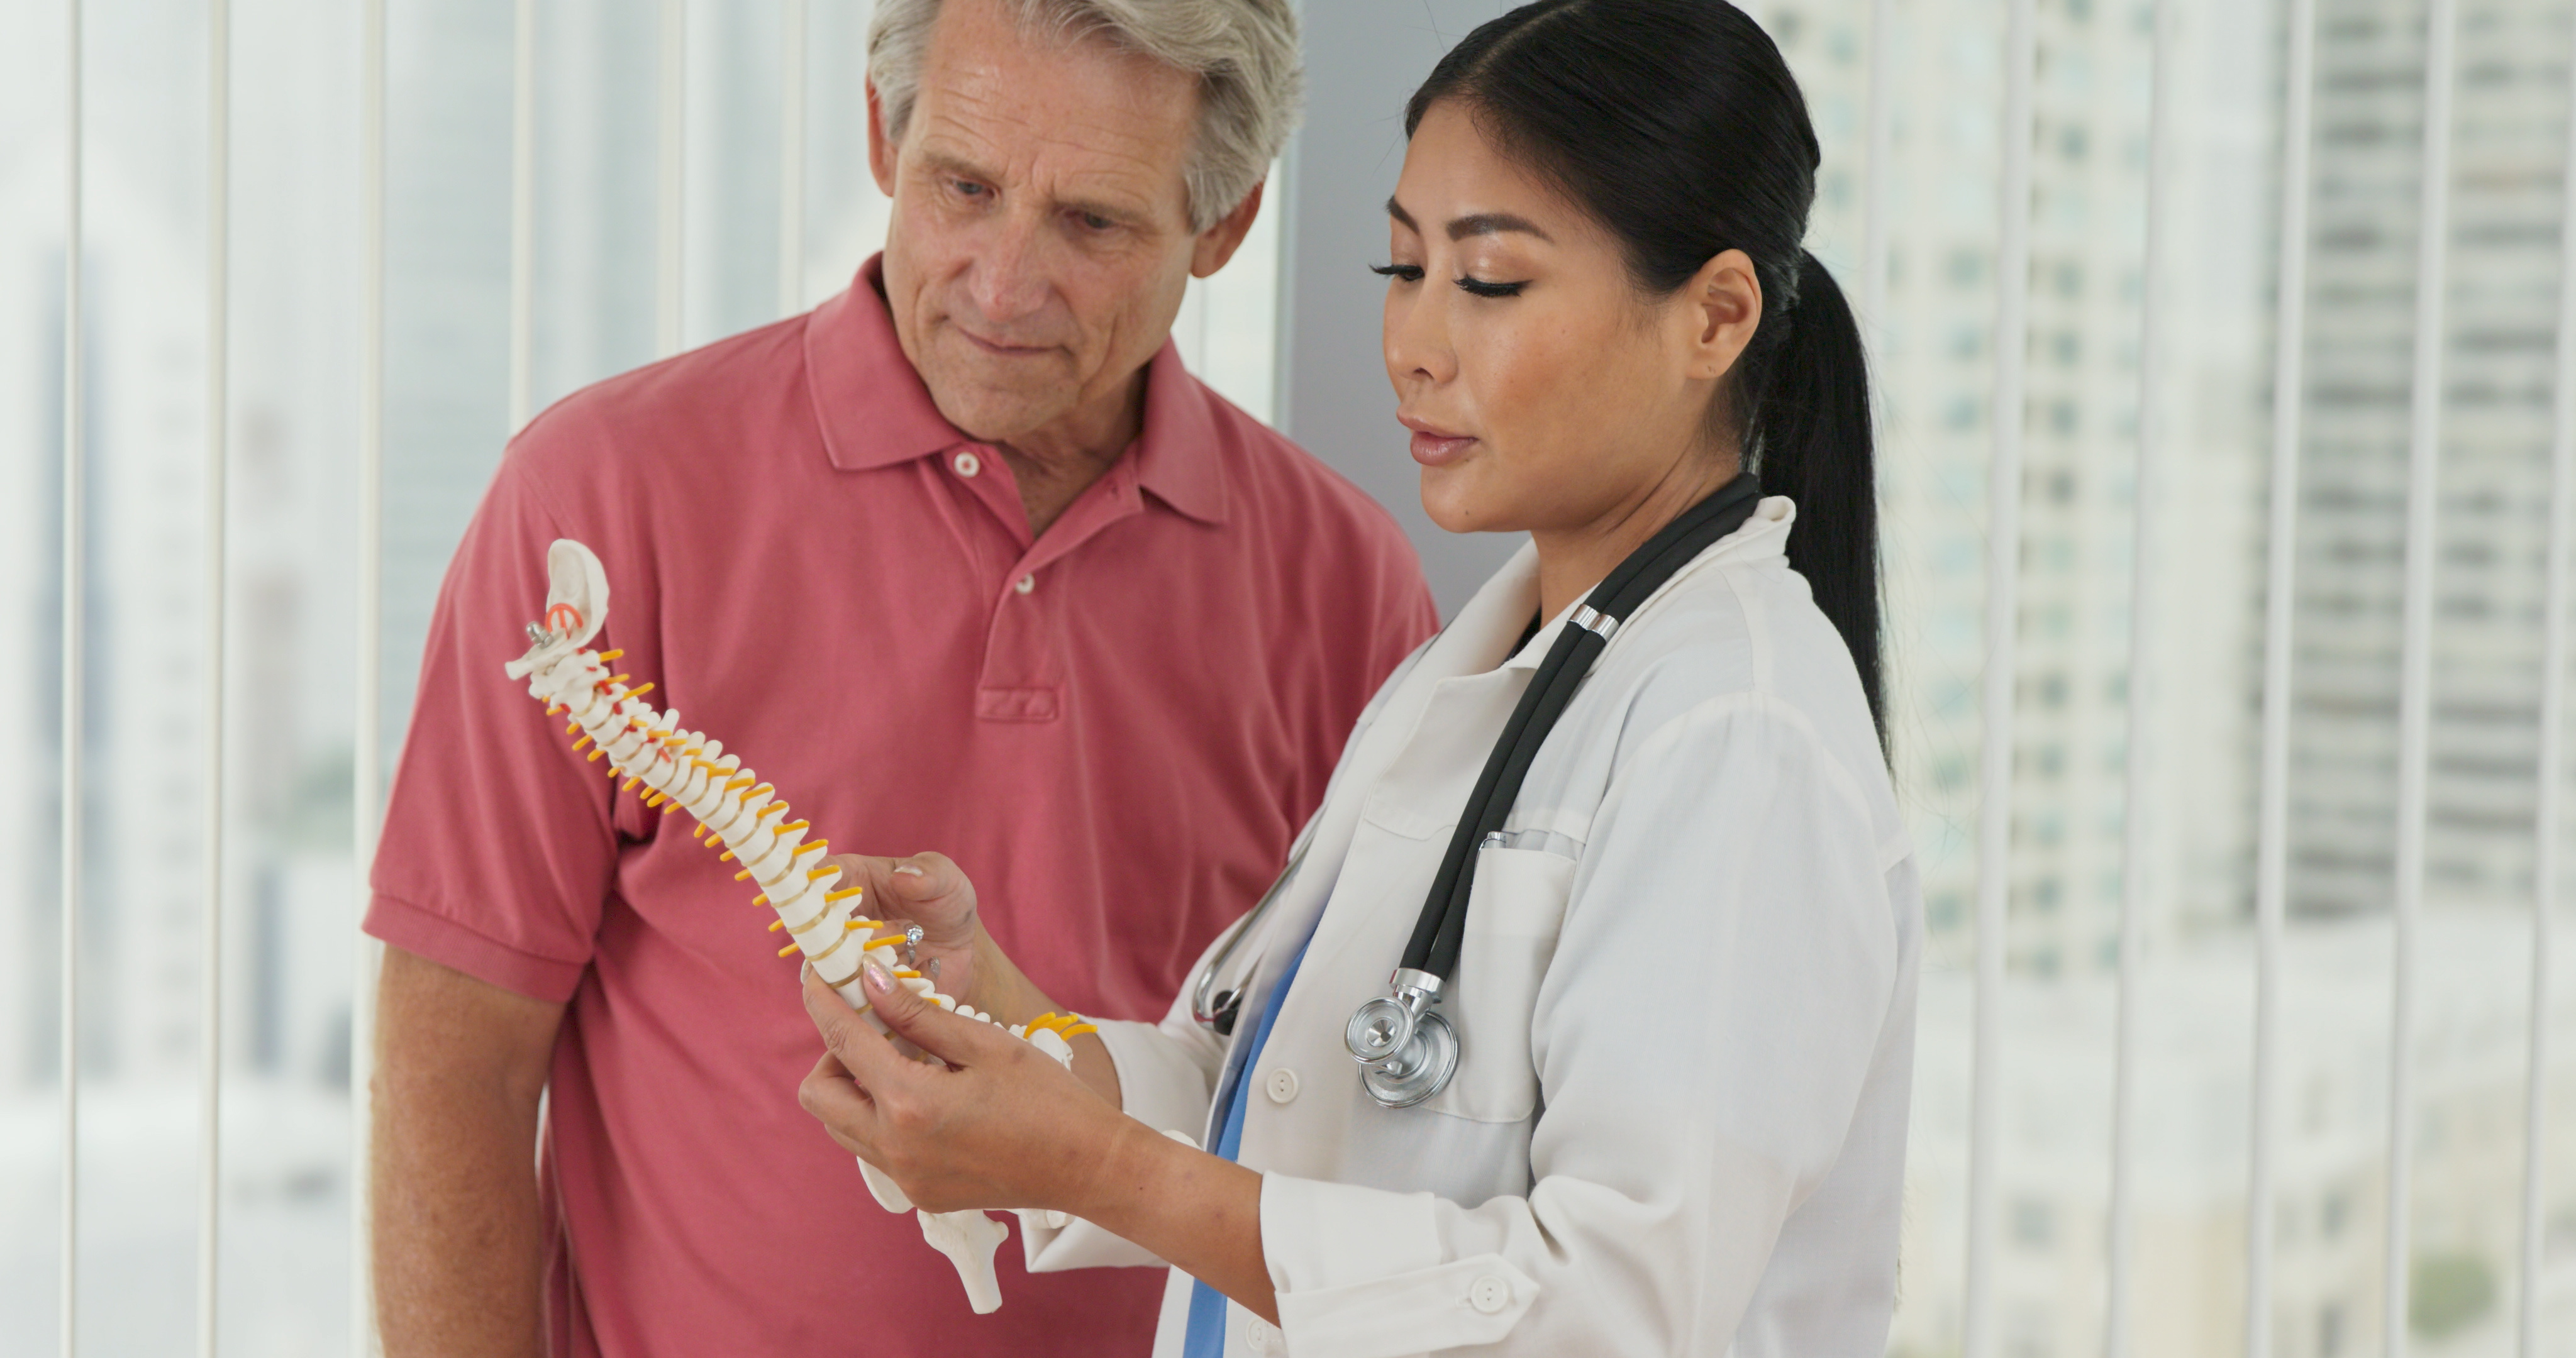 Physical therapist or chiropractor talking to aging man about treatment